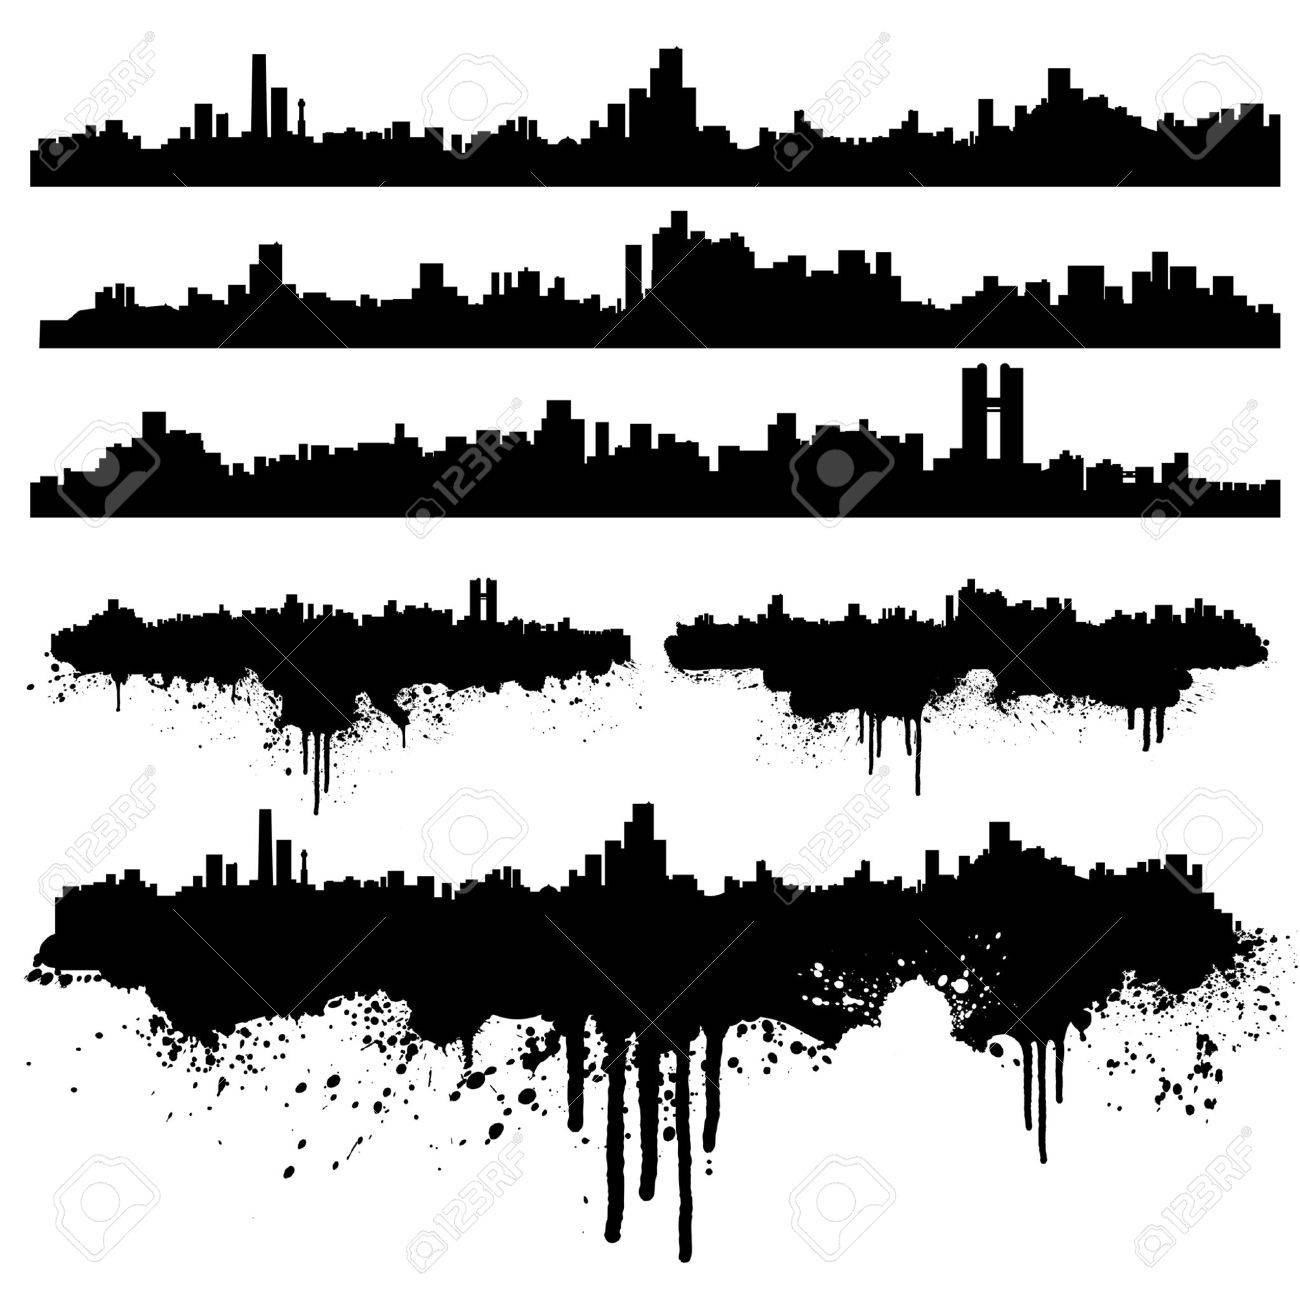 Vector illustration of six urban skylines, clean and splatter versions. Ink splashes highly detailed. Stock Vector - 3373292